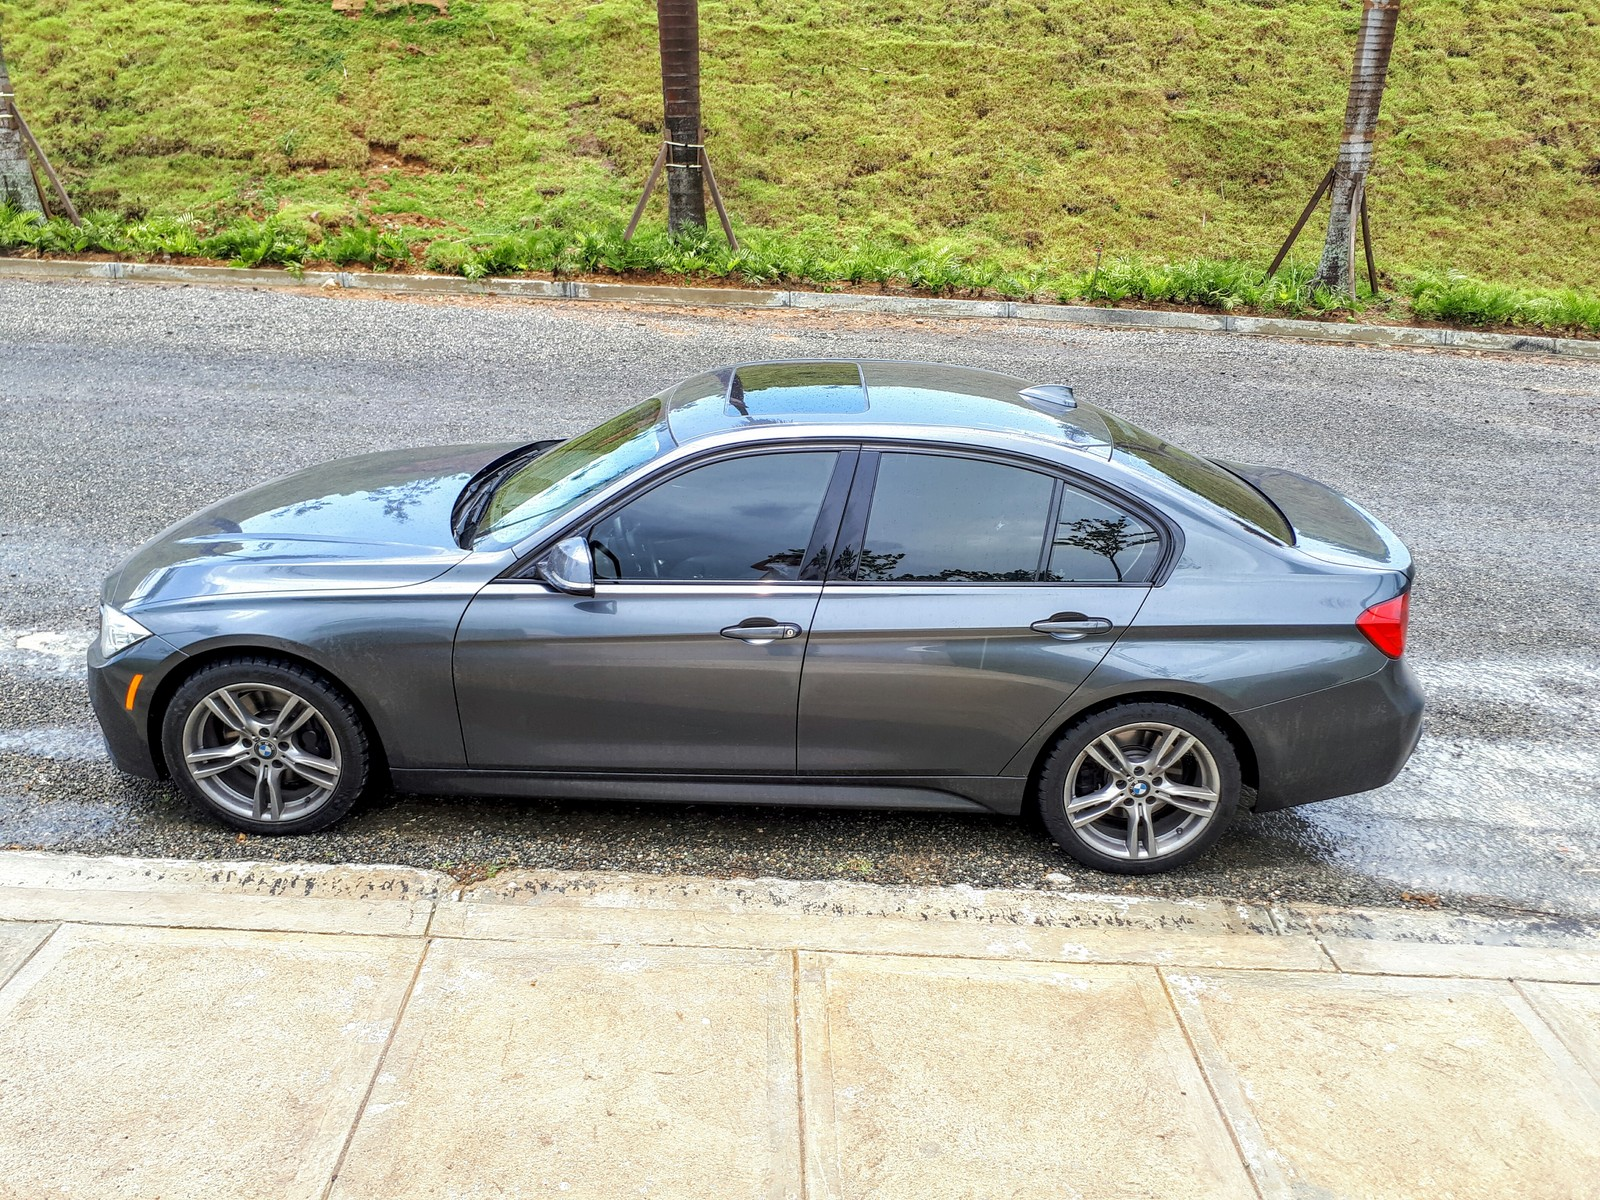 2013 Bmw 335xi M Sport 1 4 Mile Drag Racing Timeslip Specs